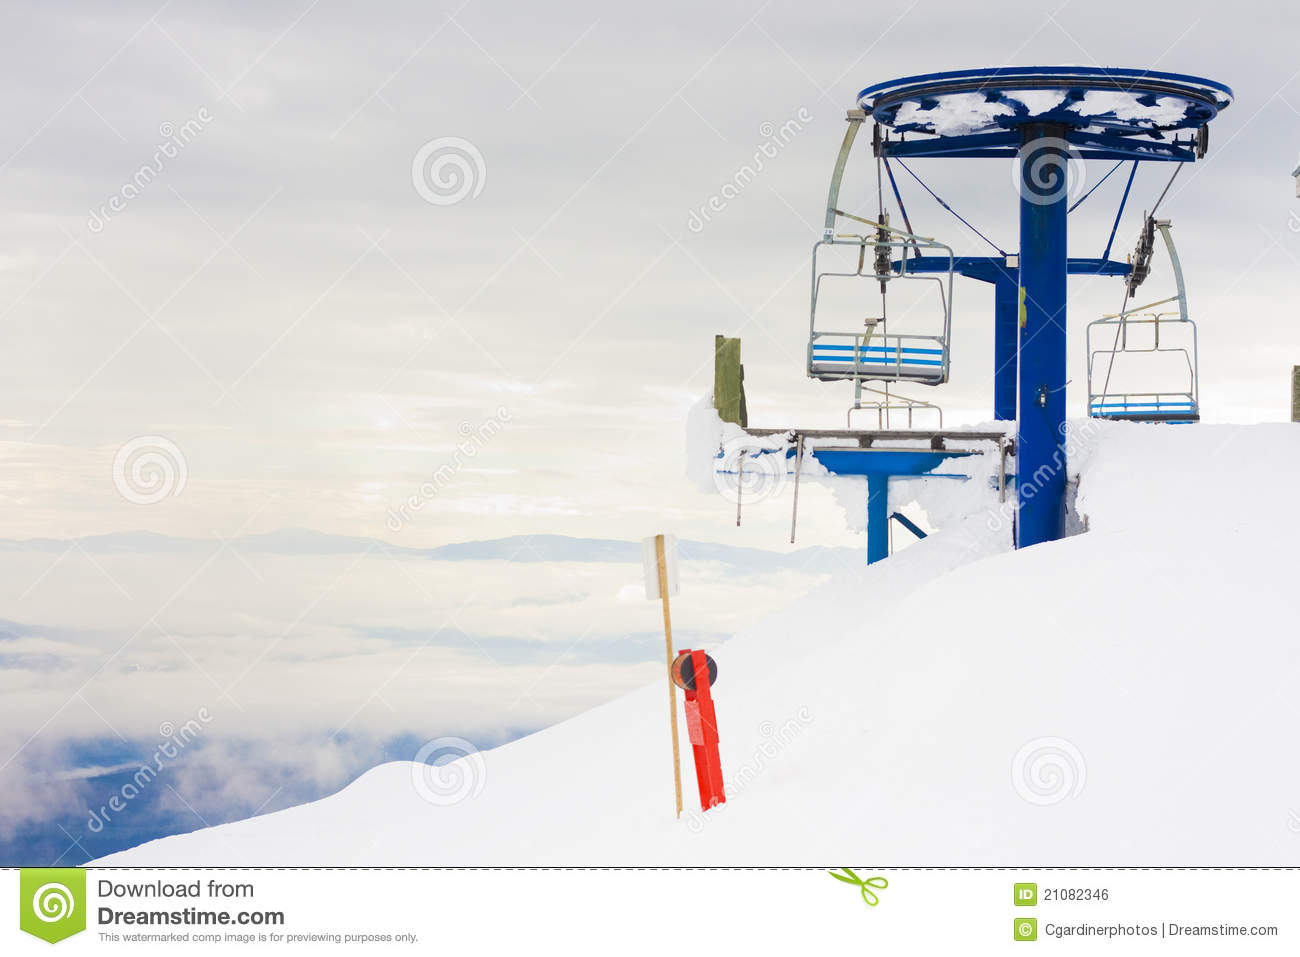 Ski hill chair lift royalty free stock image image 21082346